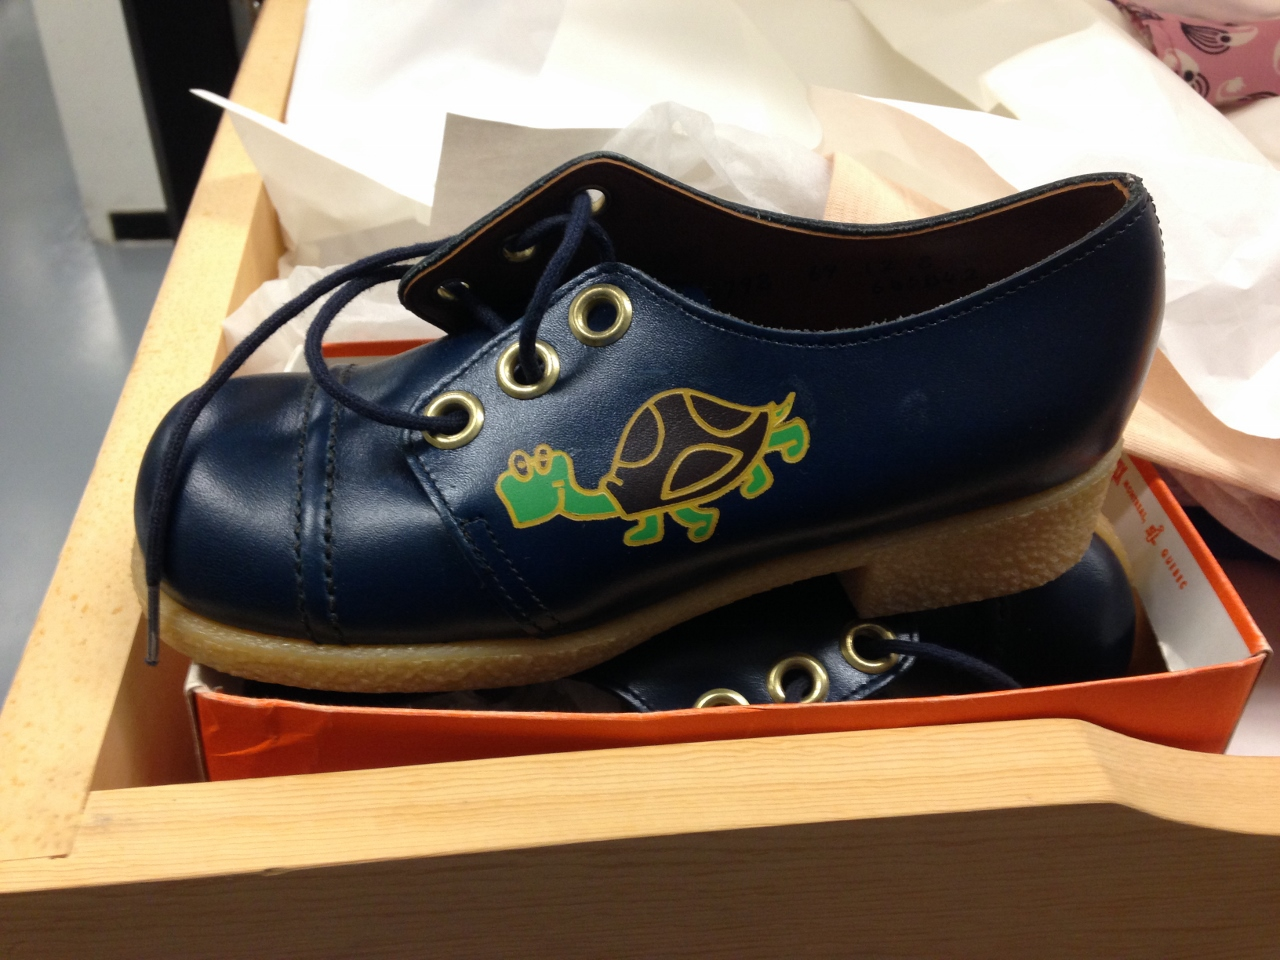 Doing artefact inventory was like treasure hunting. Check out these cool vintage shoes in the collection.